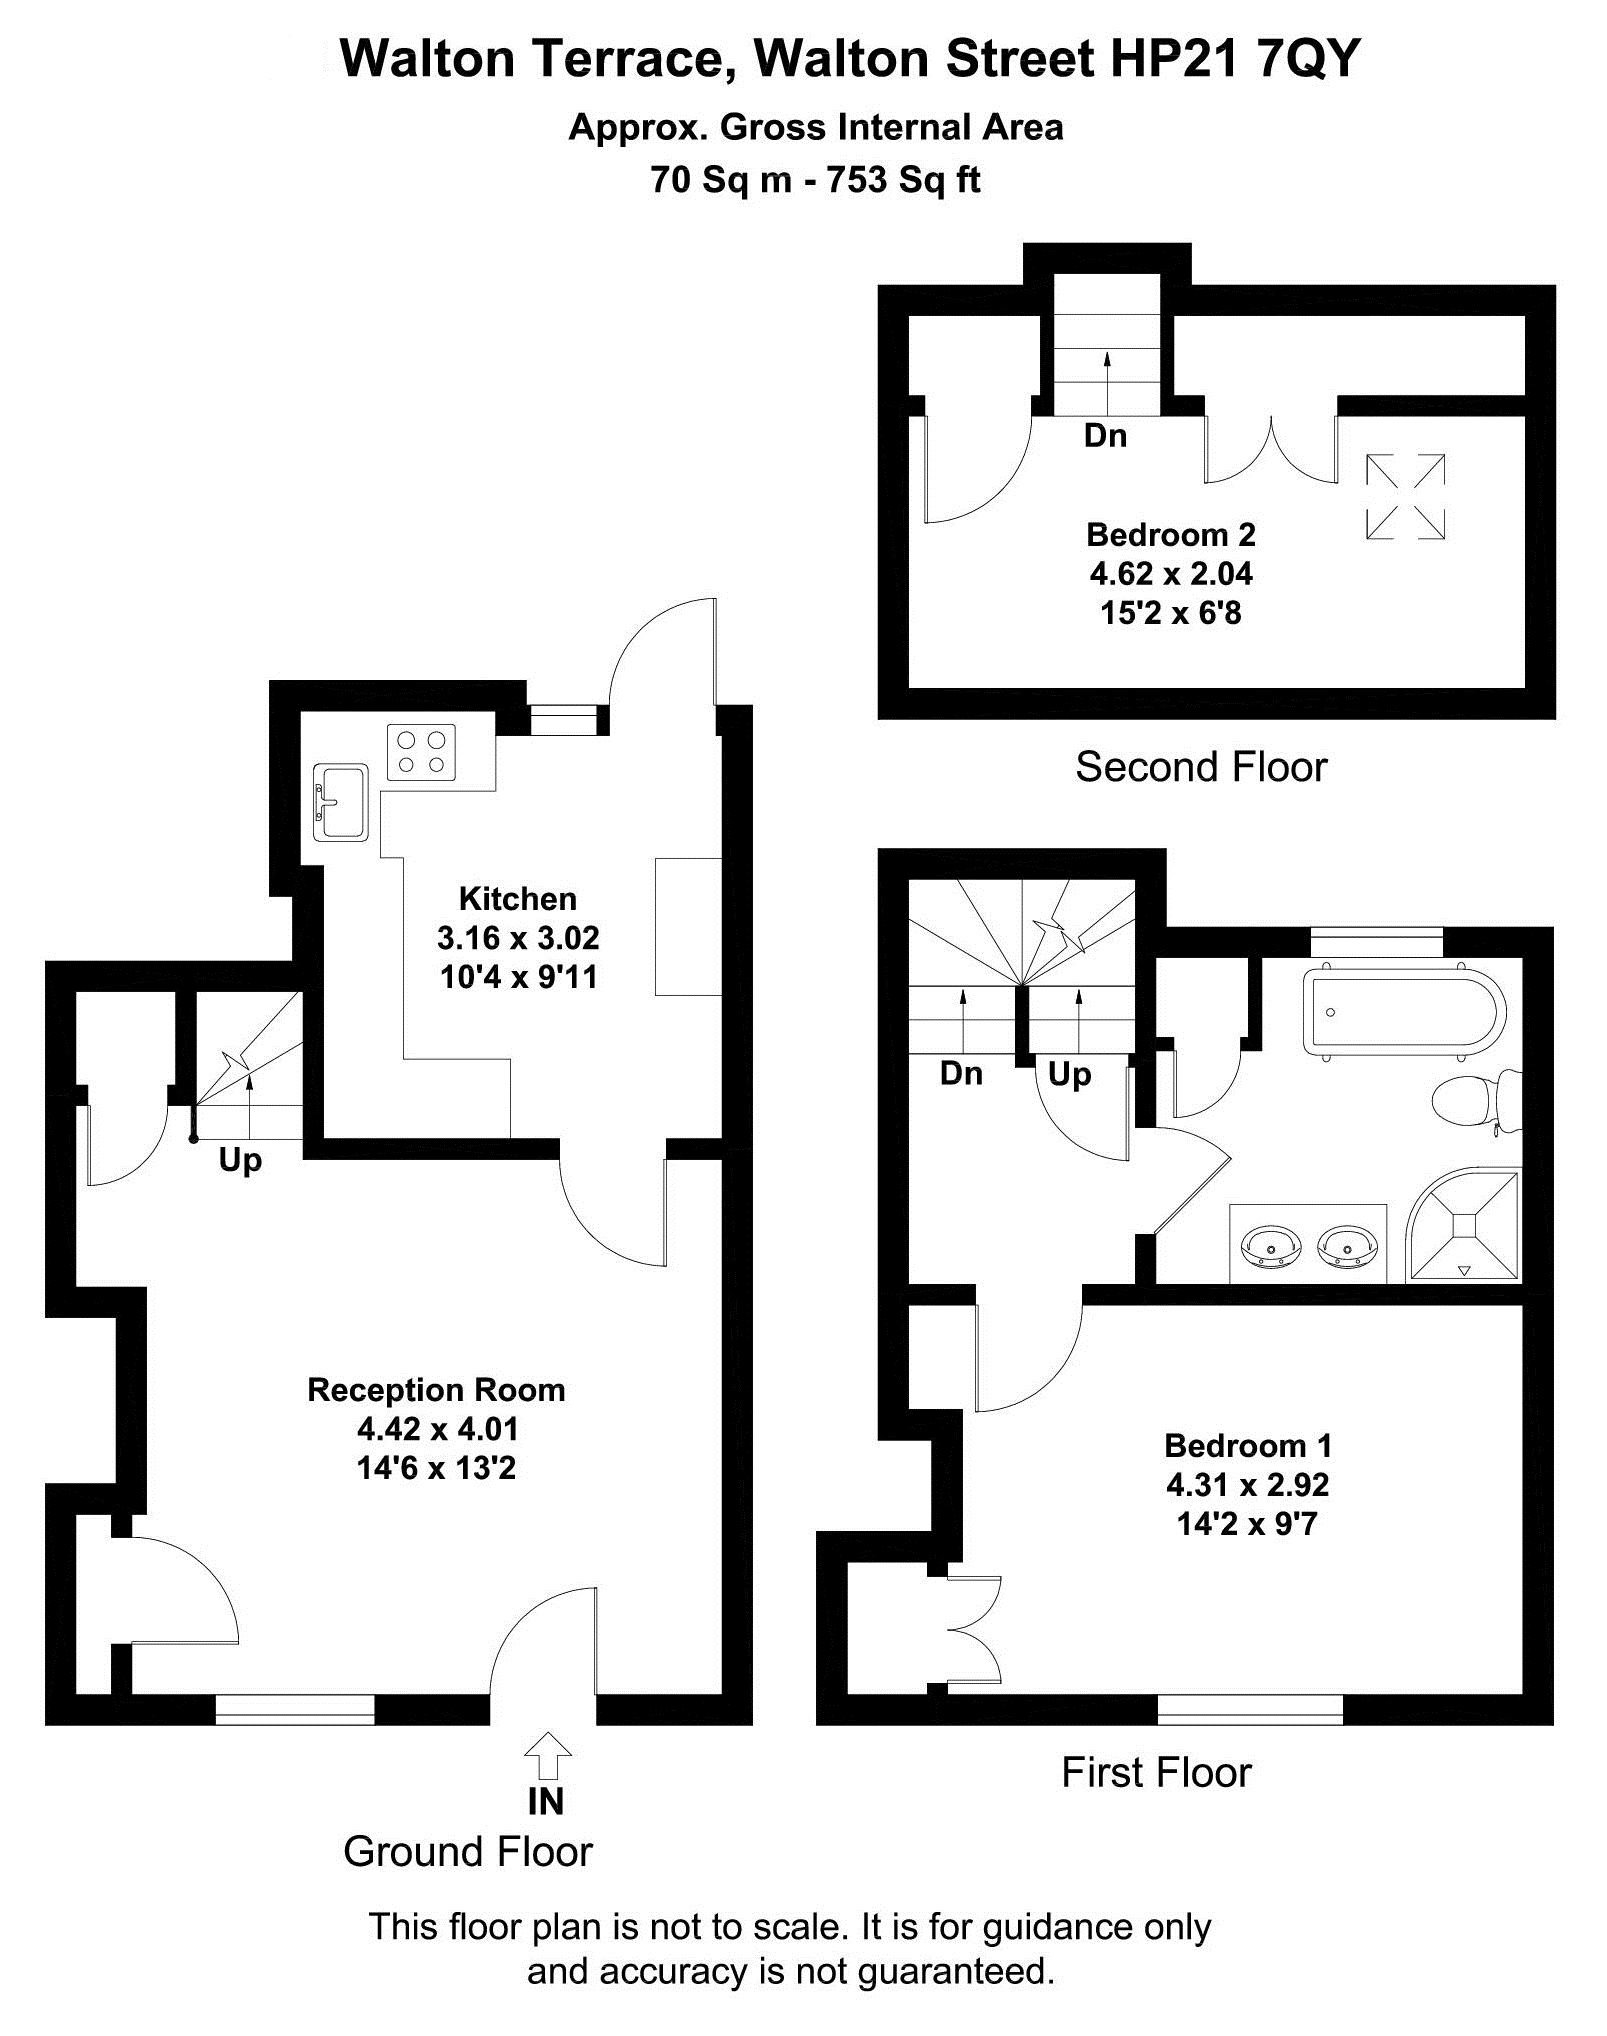 2 bedroom house to rent walton street aylesbury hp hp21 7qy for Walton house floor plan